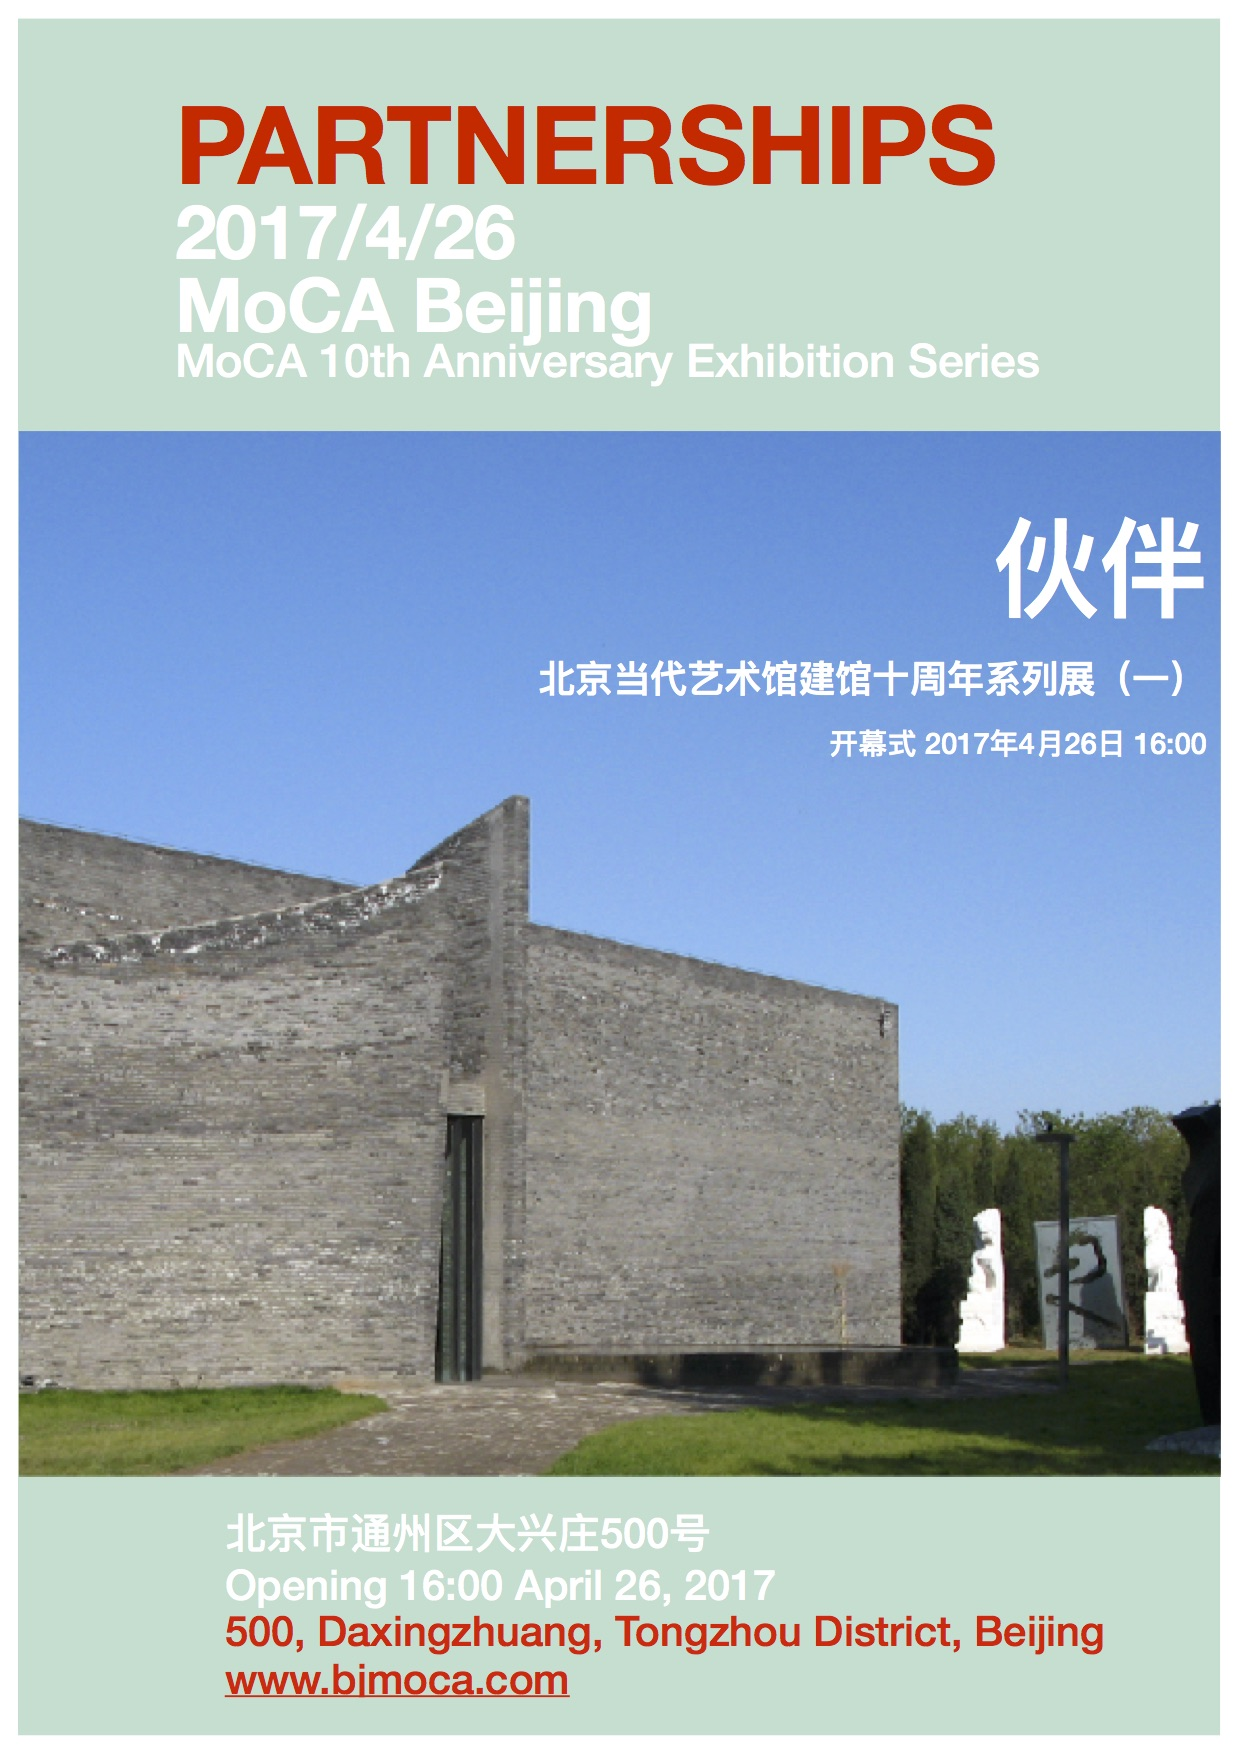 Partnerships - MoCA 10th Anniversary Exhibition Series (1)